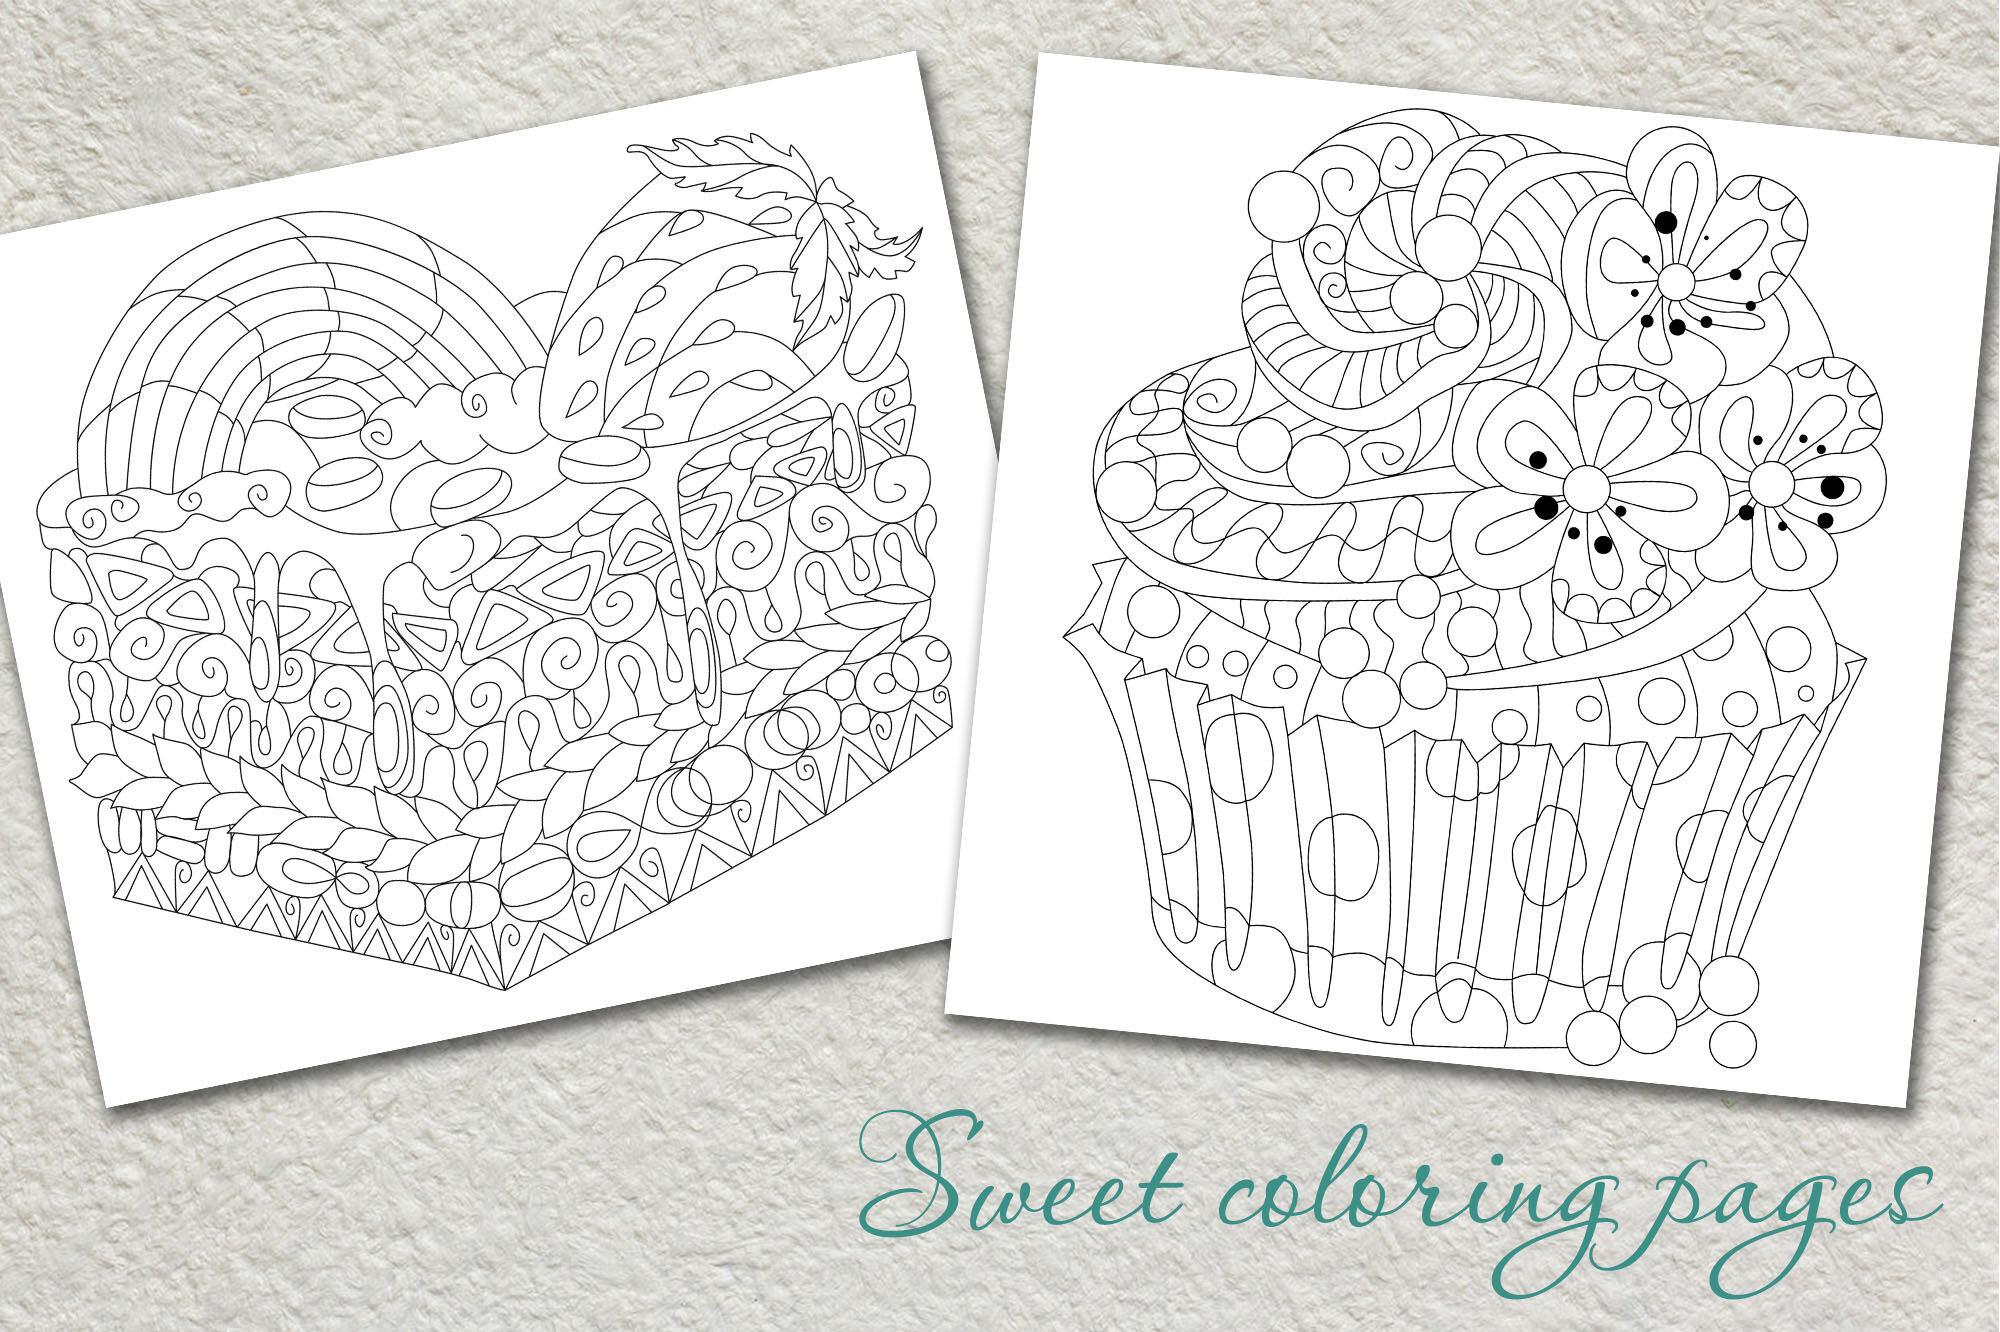 Zentangle Cakes Color And Outline Set By Watercolor Fantasies